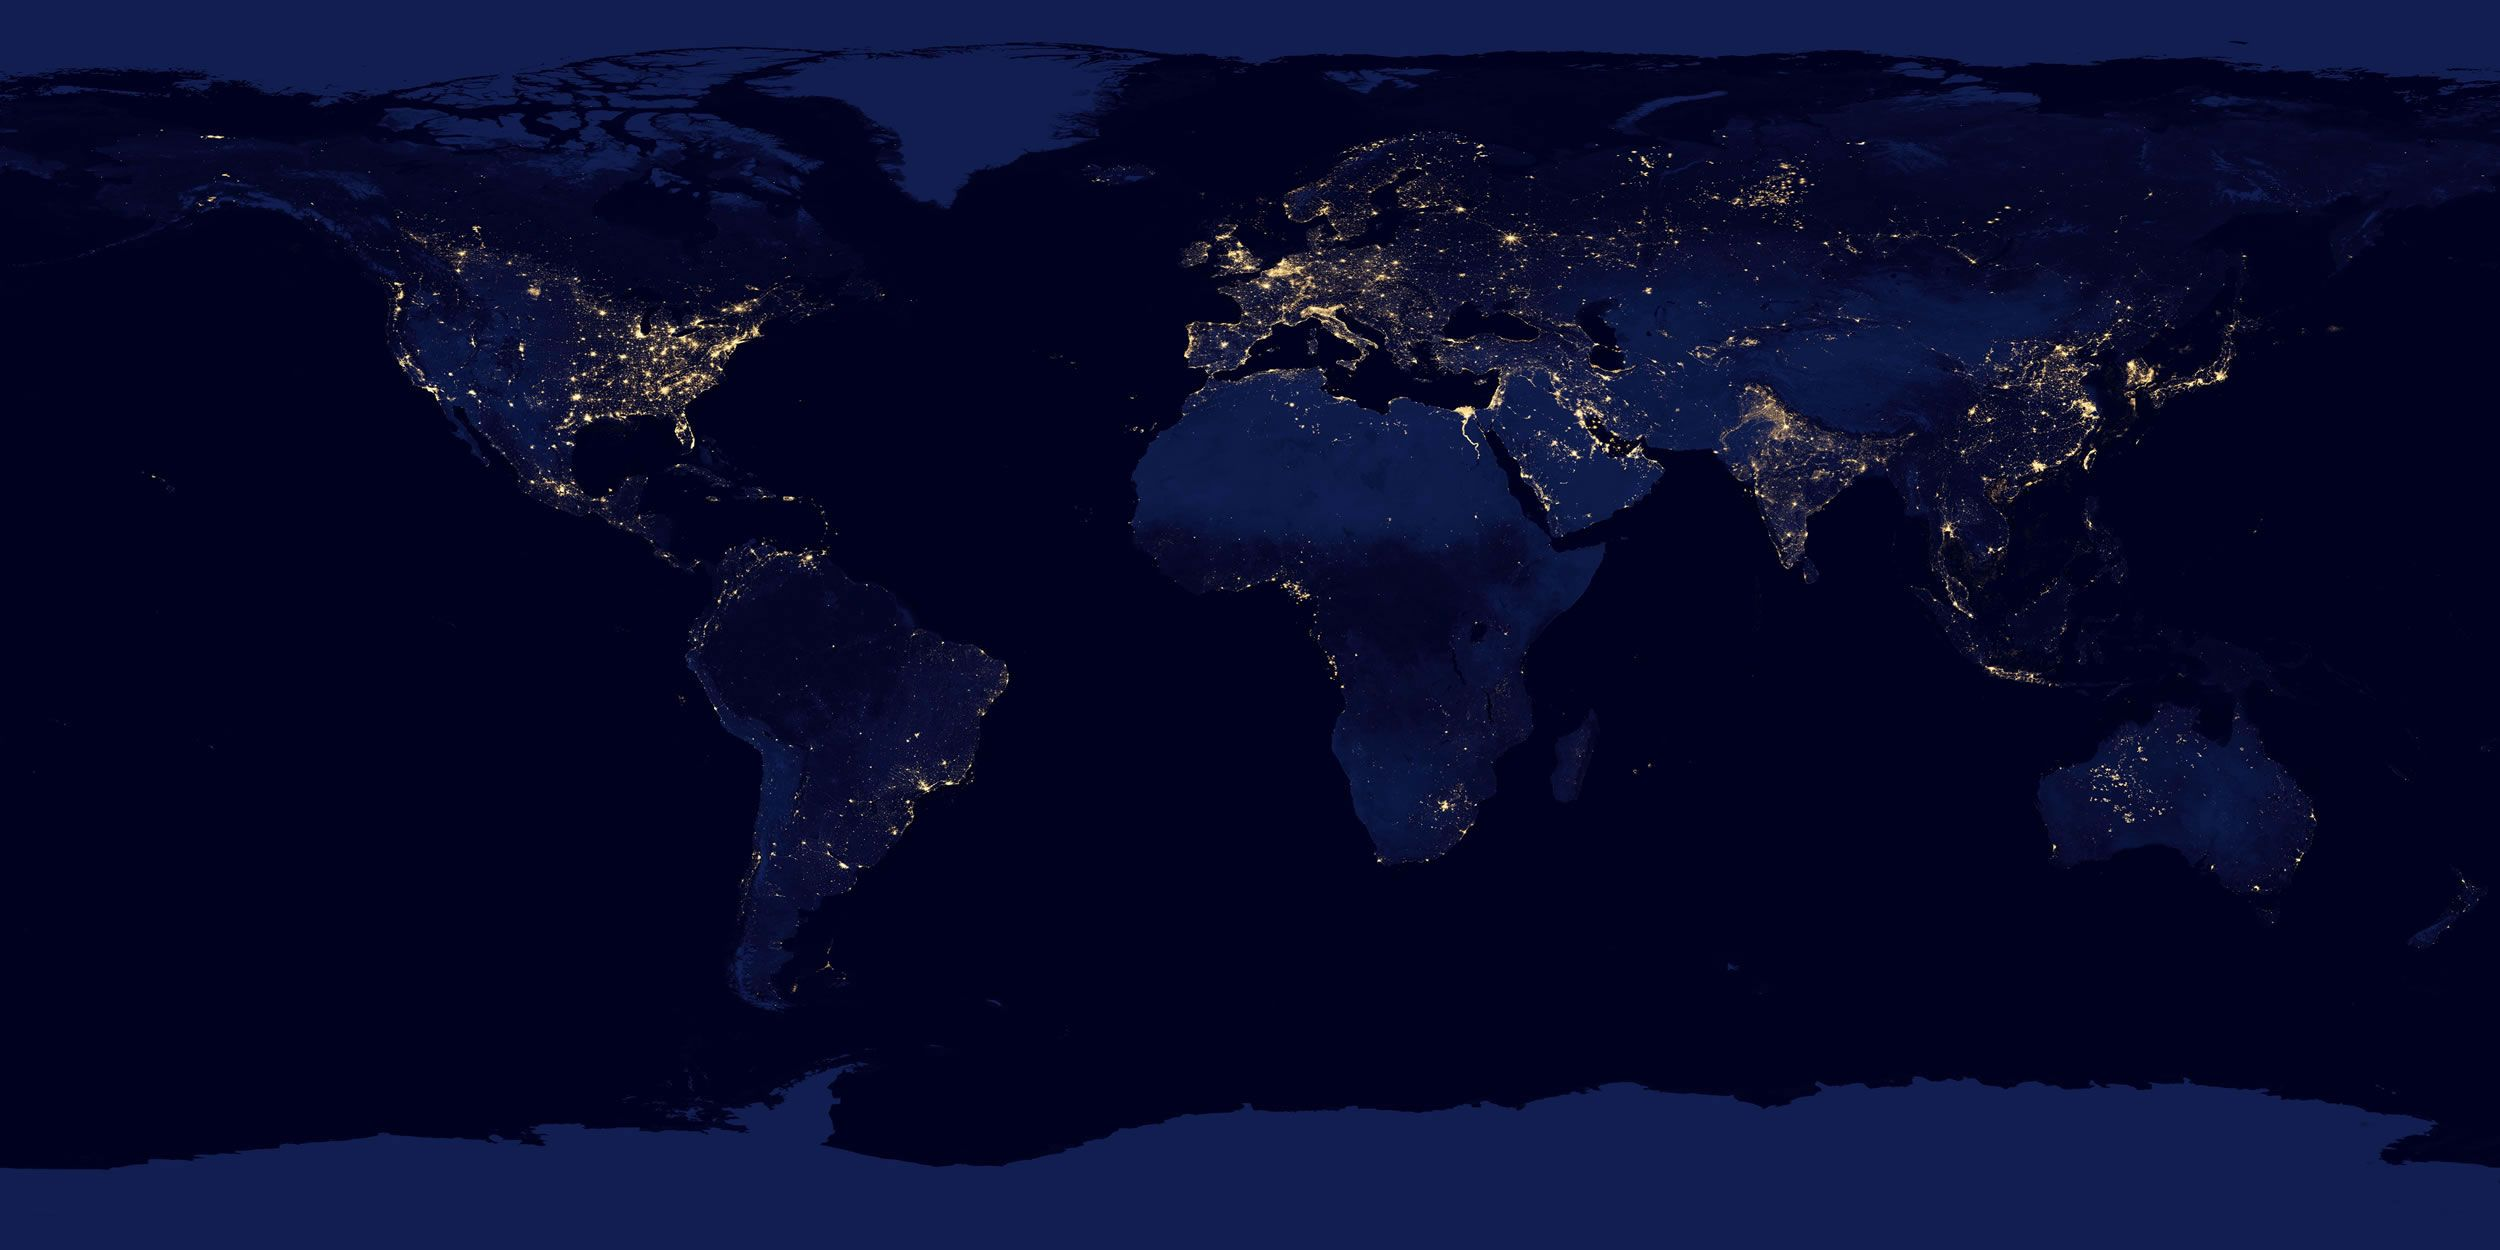 world map of cities at night wow